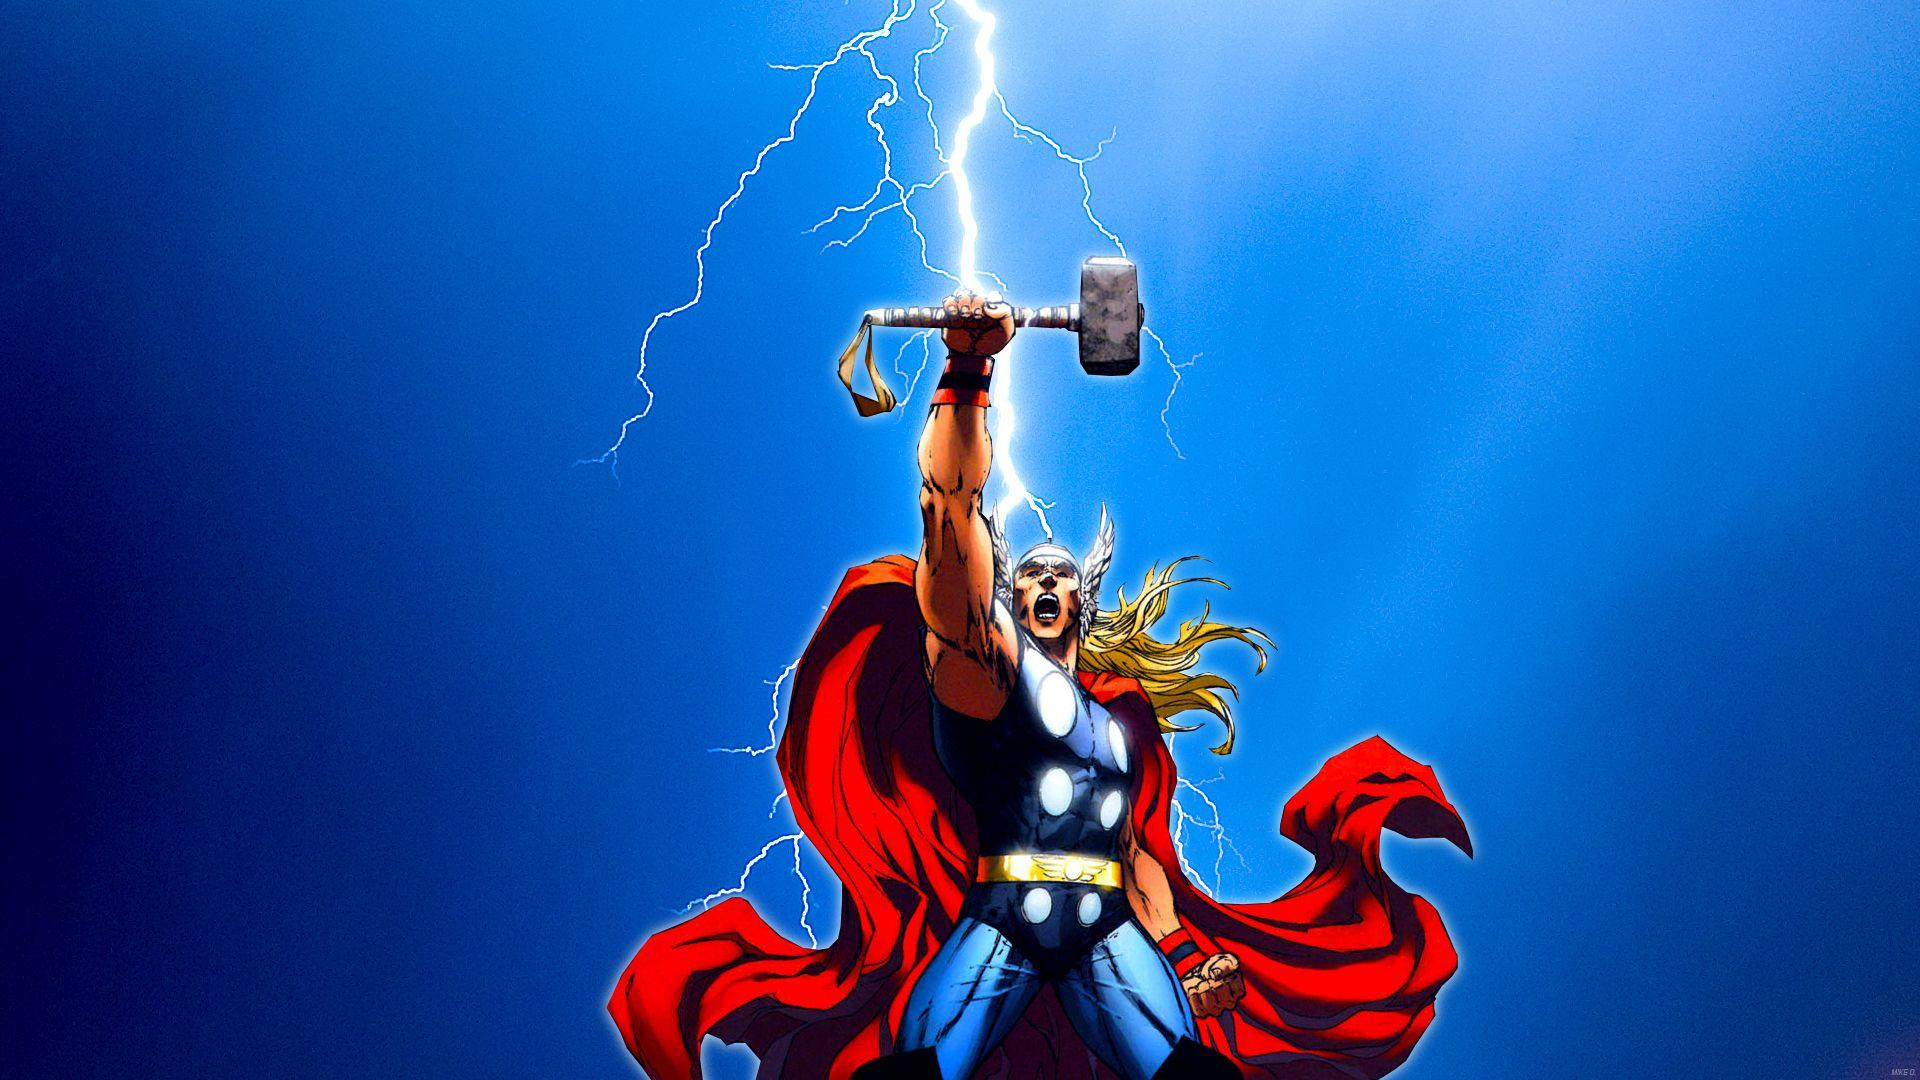 89+ Thor Lightning Wallpapers